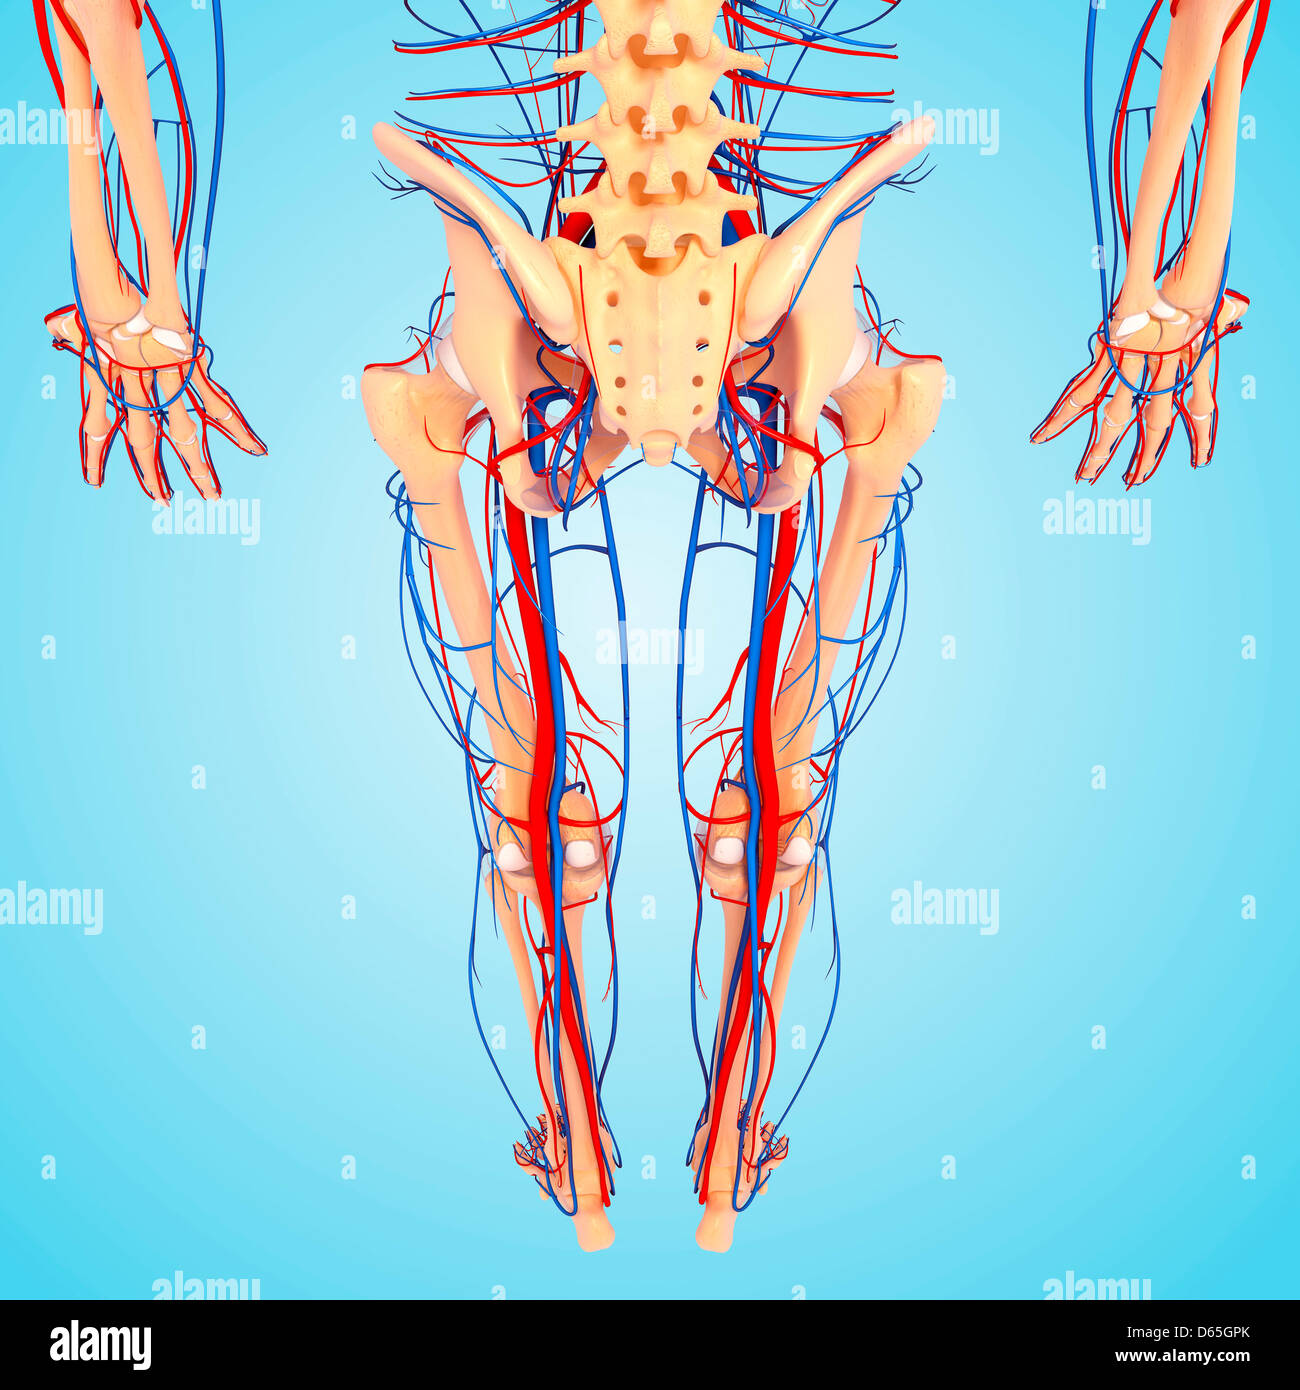 Lower Body Anatomy Artwork Stock Photo 55441979 Alamy